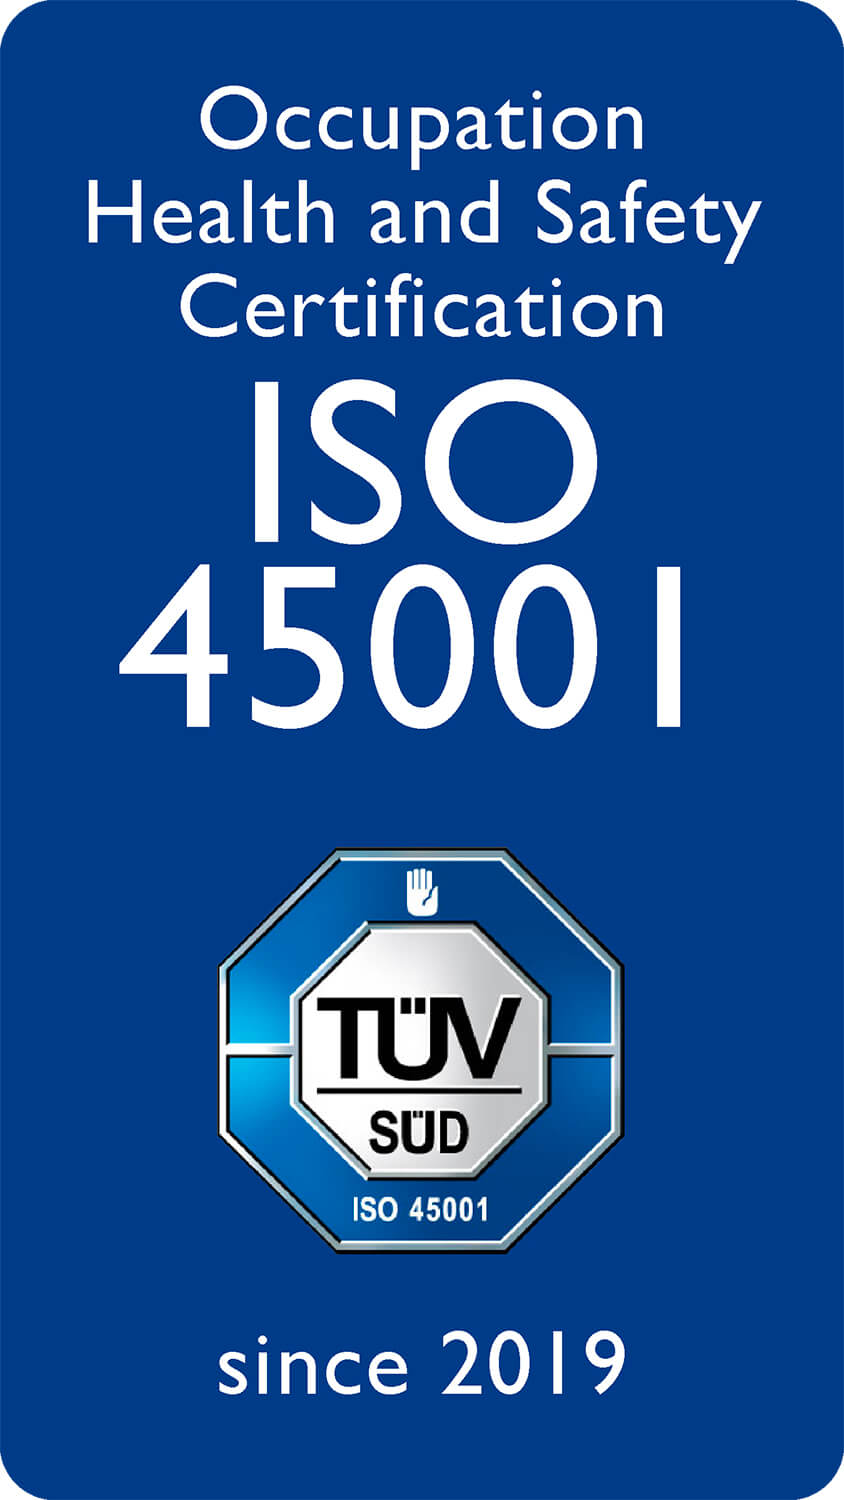 Occupation Health and Safety Certification ISO 45001 Since 2019